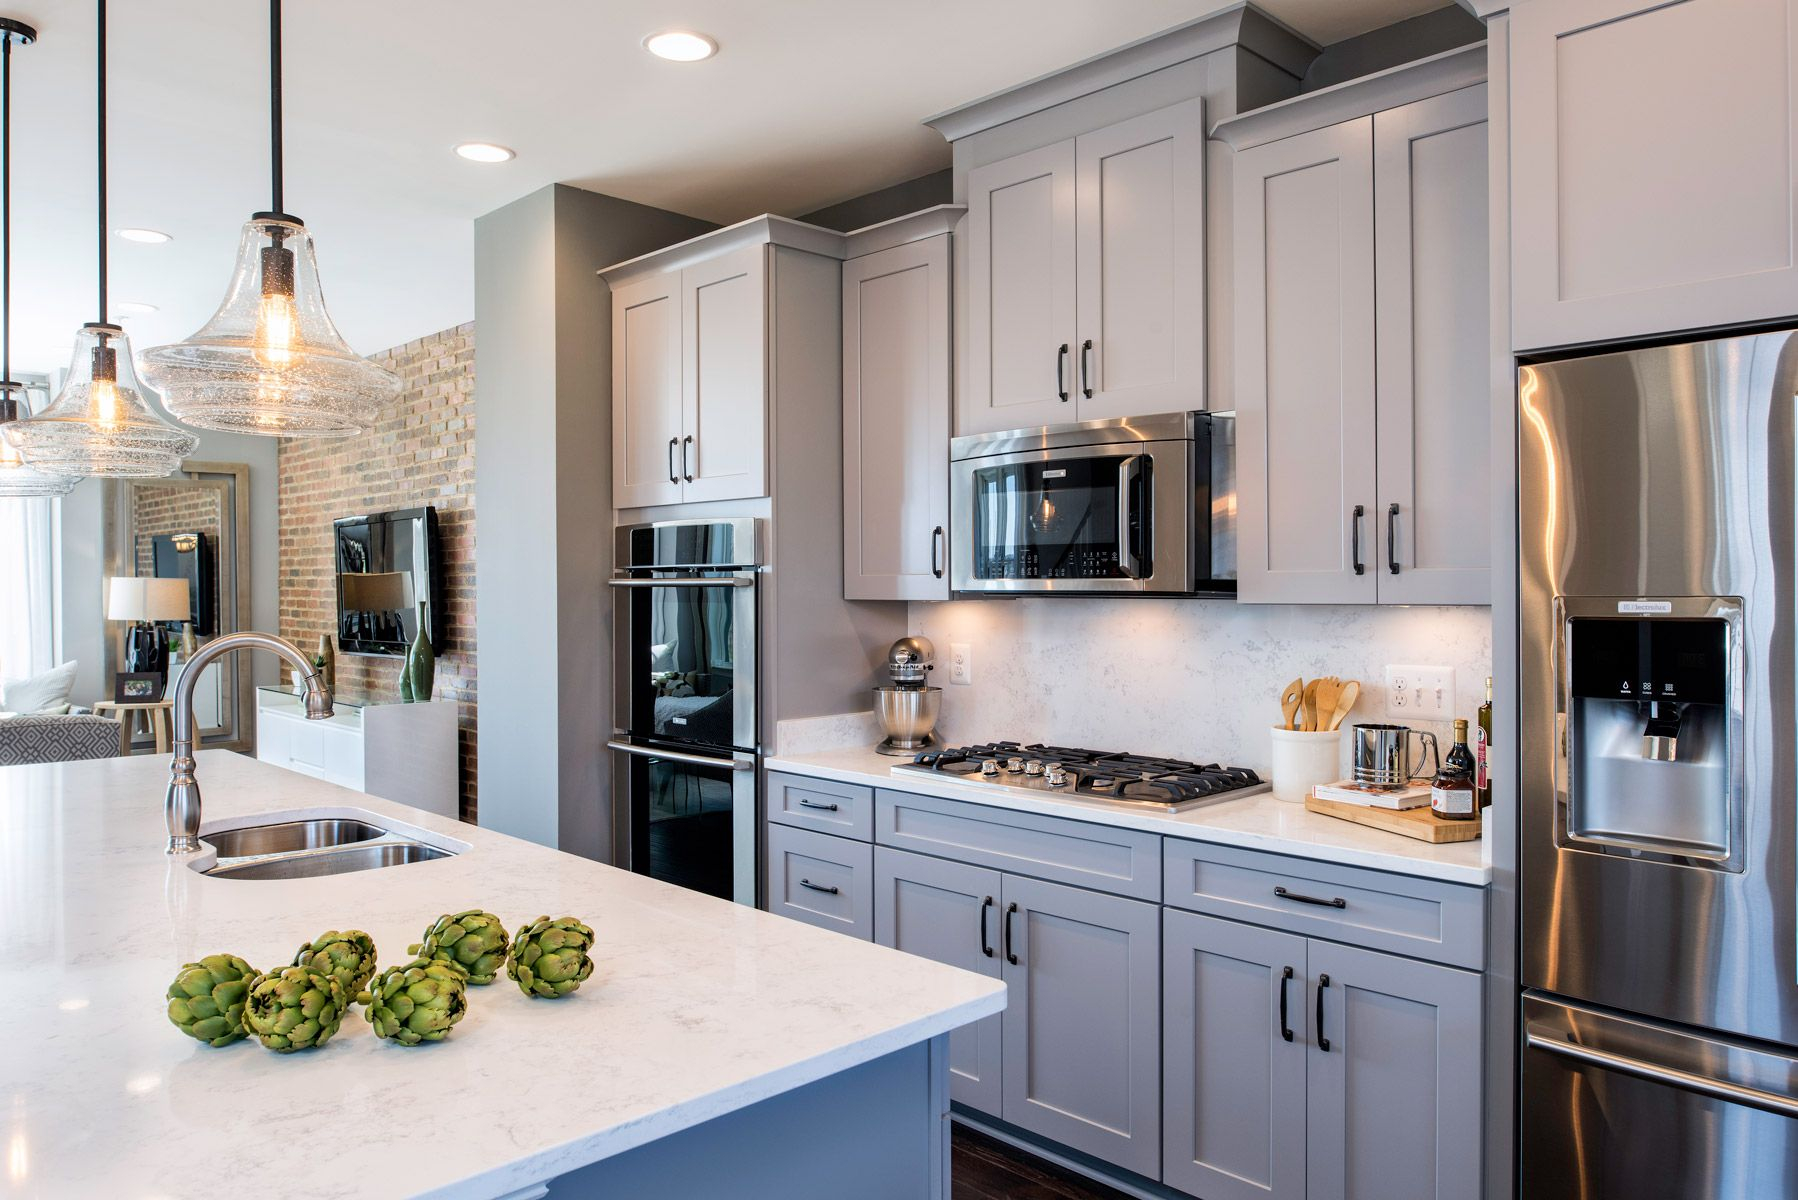 The Cassidy Home Kitchens Kitchen Design Sweet Home